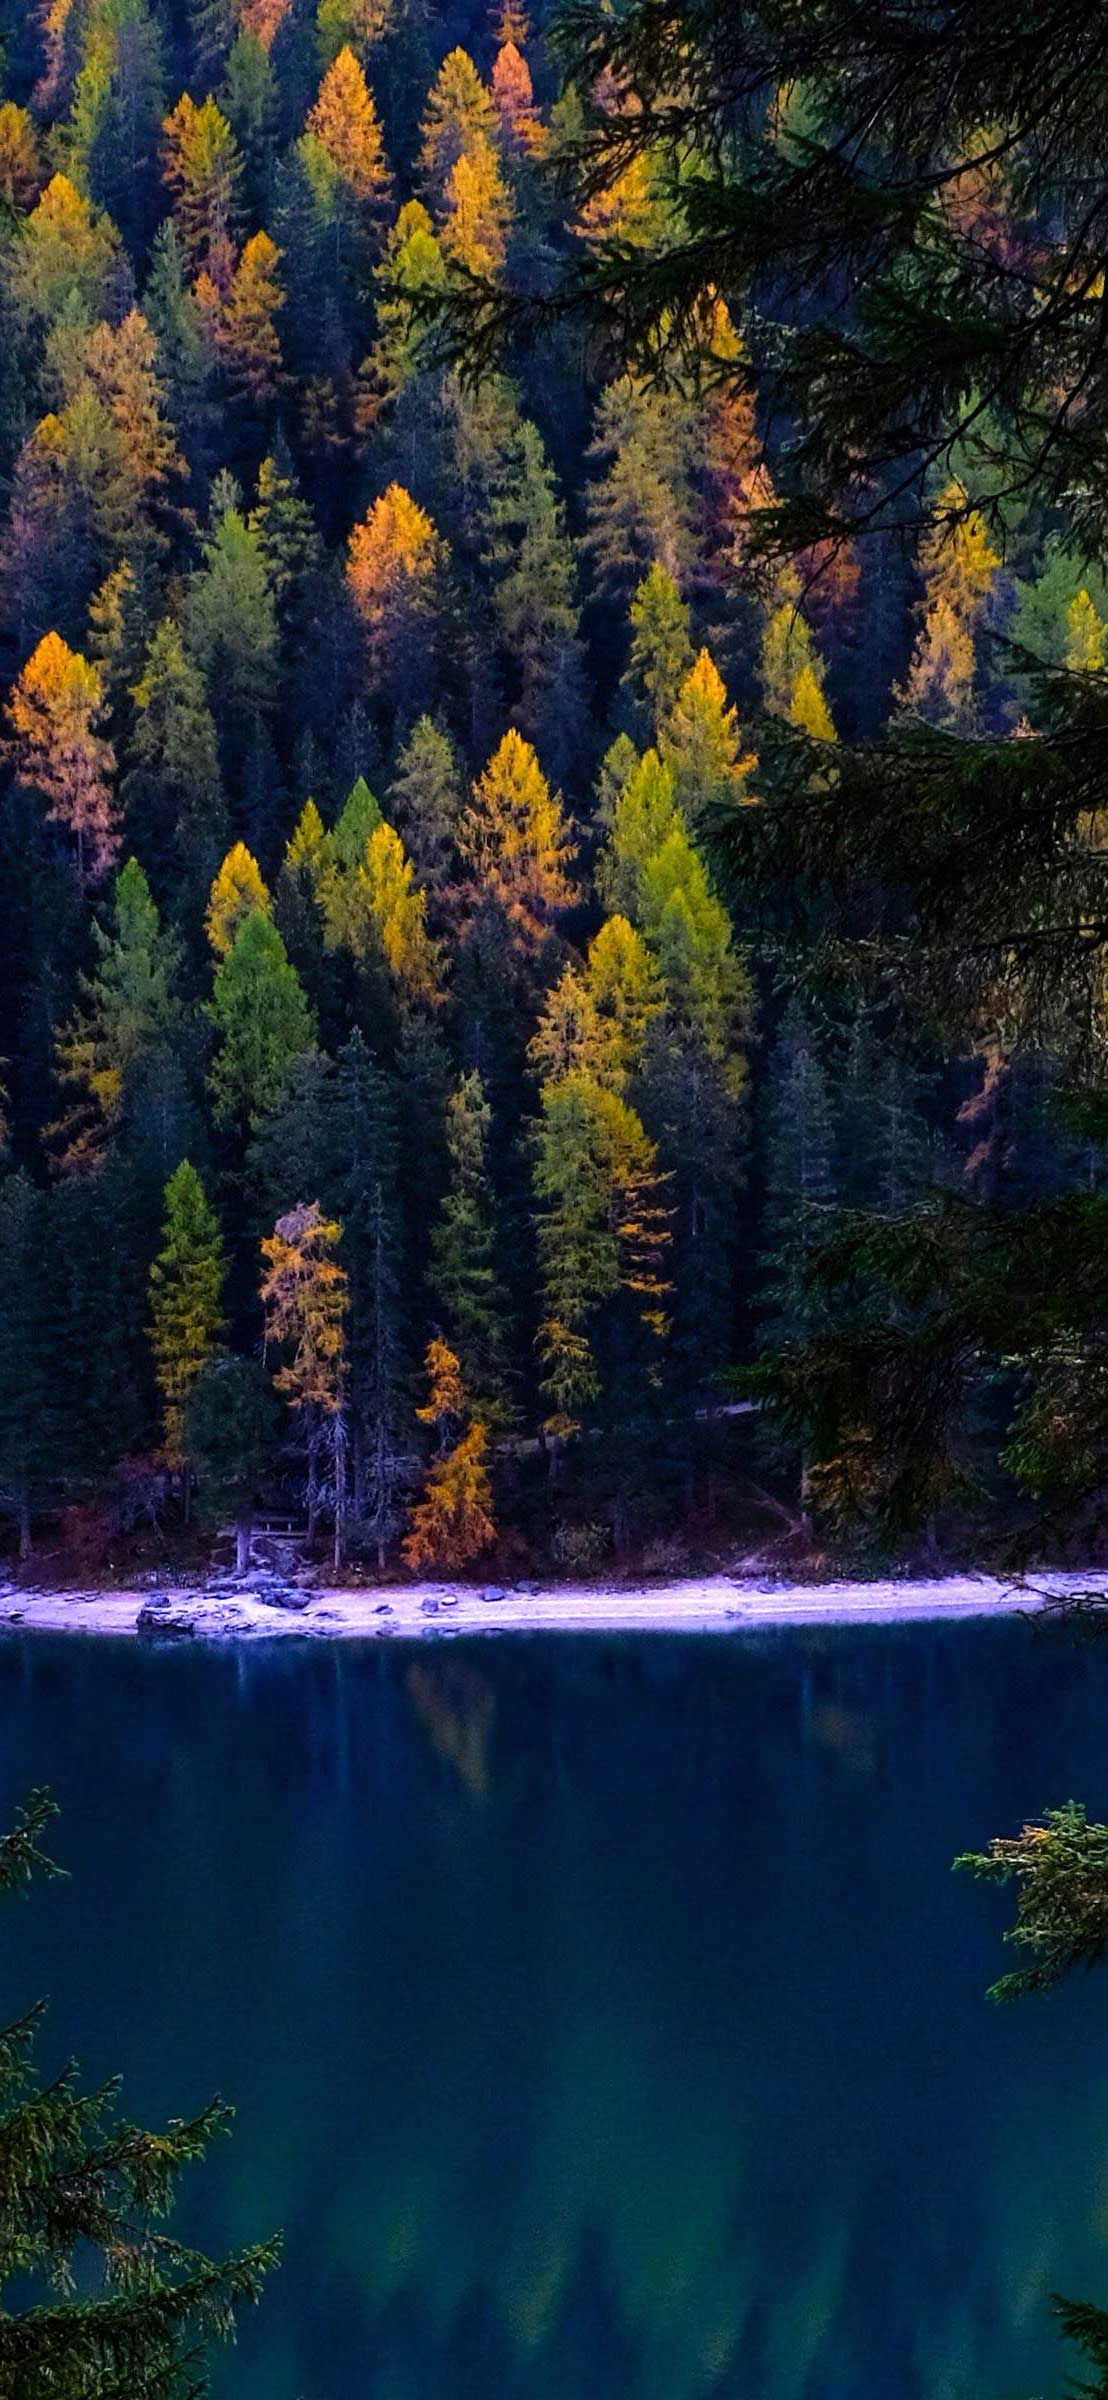 Iphone X Wallpaper Forest autumn lake Hd in 2020 Autumn